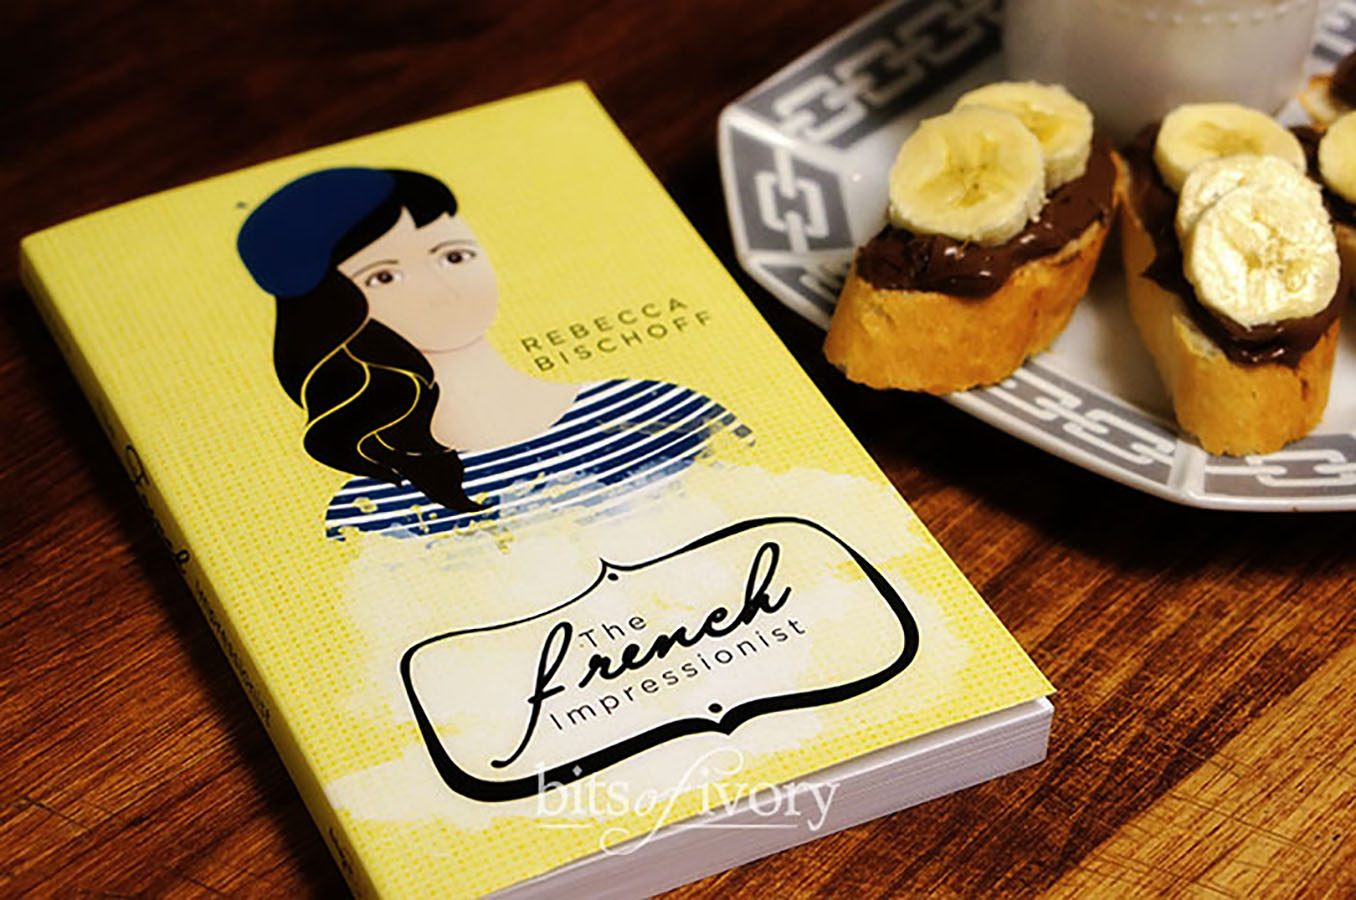 The French Impressionist by Rebecca Bischoff with Nutellas and Bananas | www.bitsofivory.com